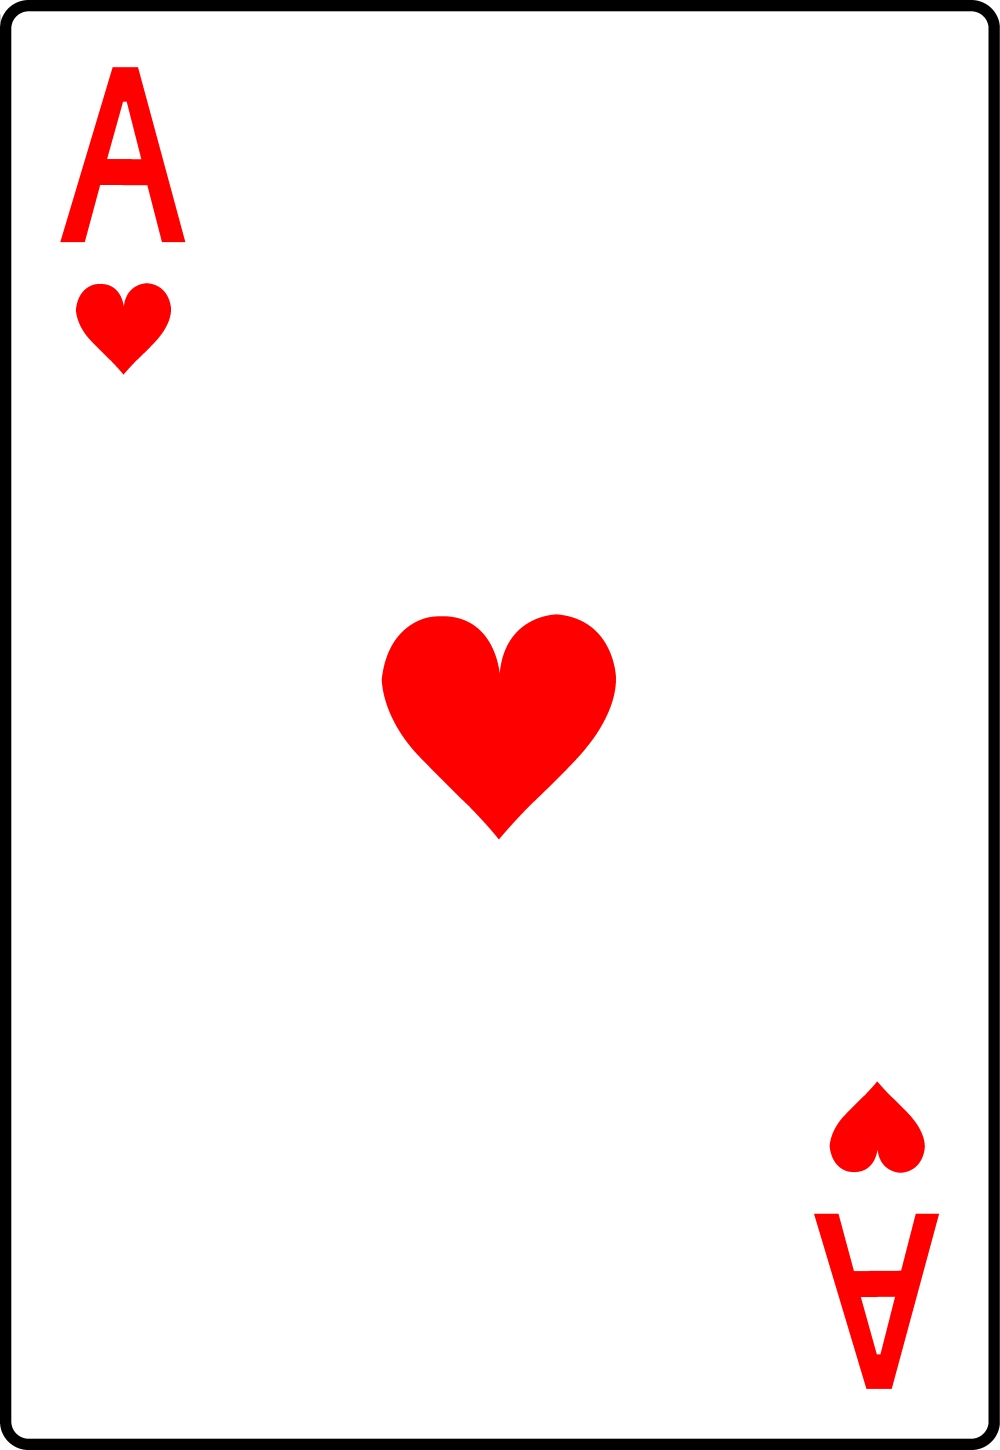 medium resolution of ace of hearts playing card free clip art